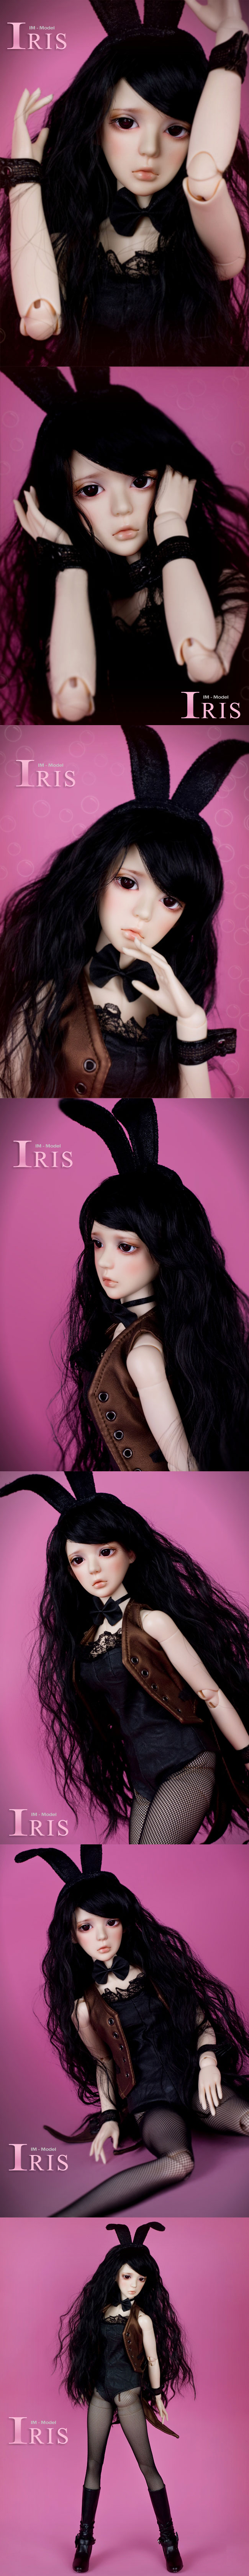 BJD Iris 56cm Girl Ball-jointed Doll